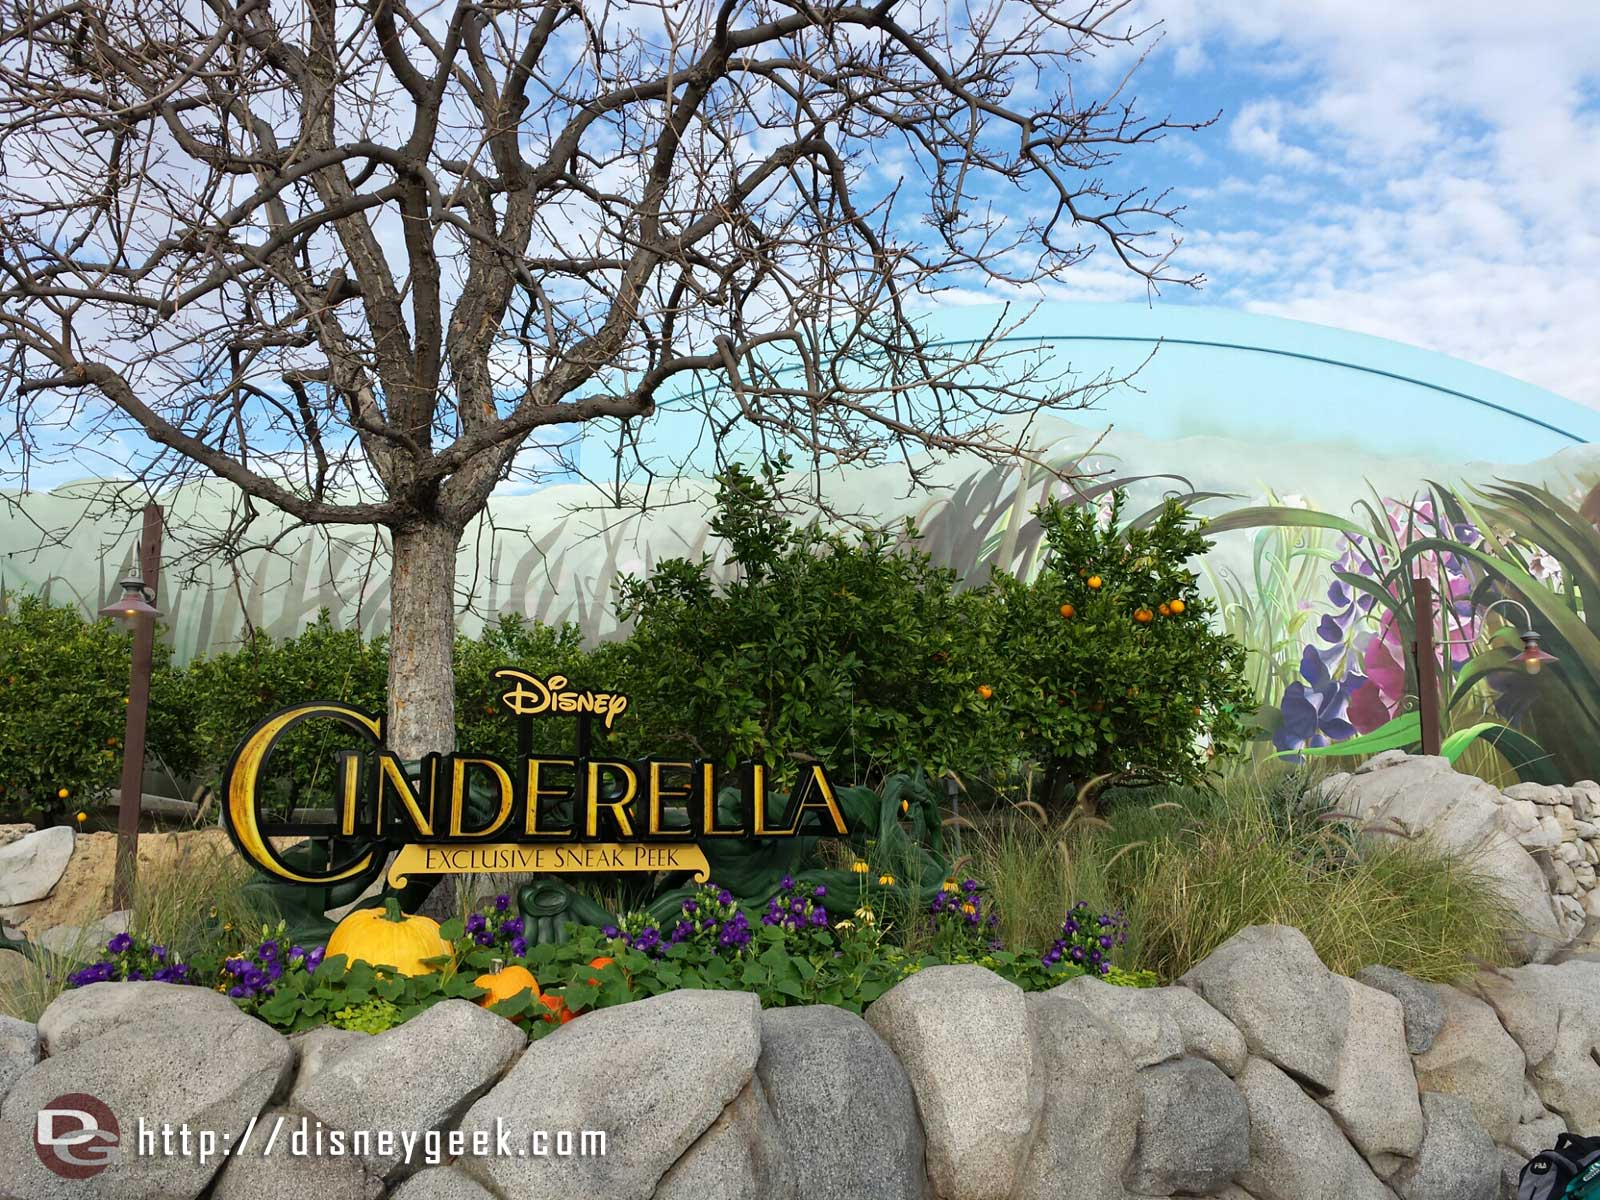 A preview for the upcoming Cinderella film has moved into the Bugs Theater